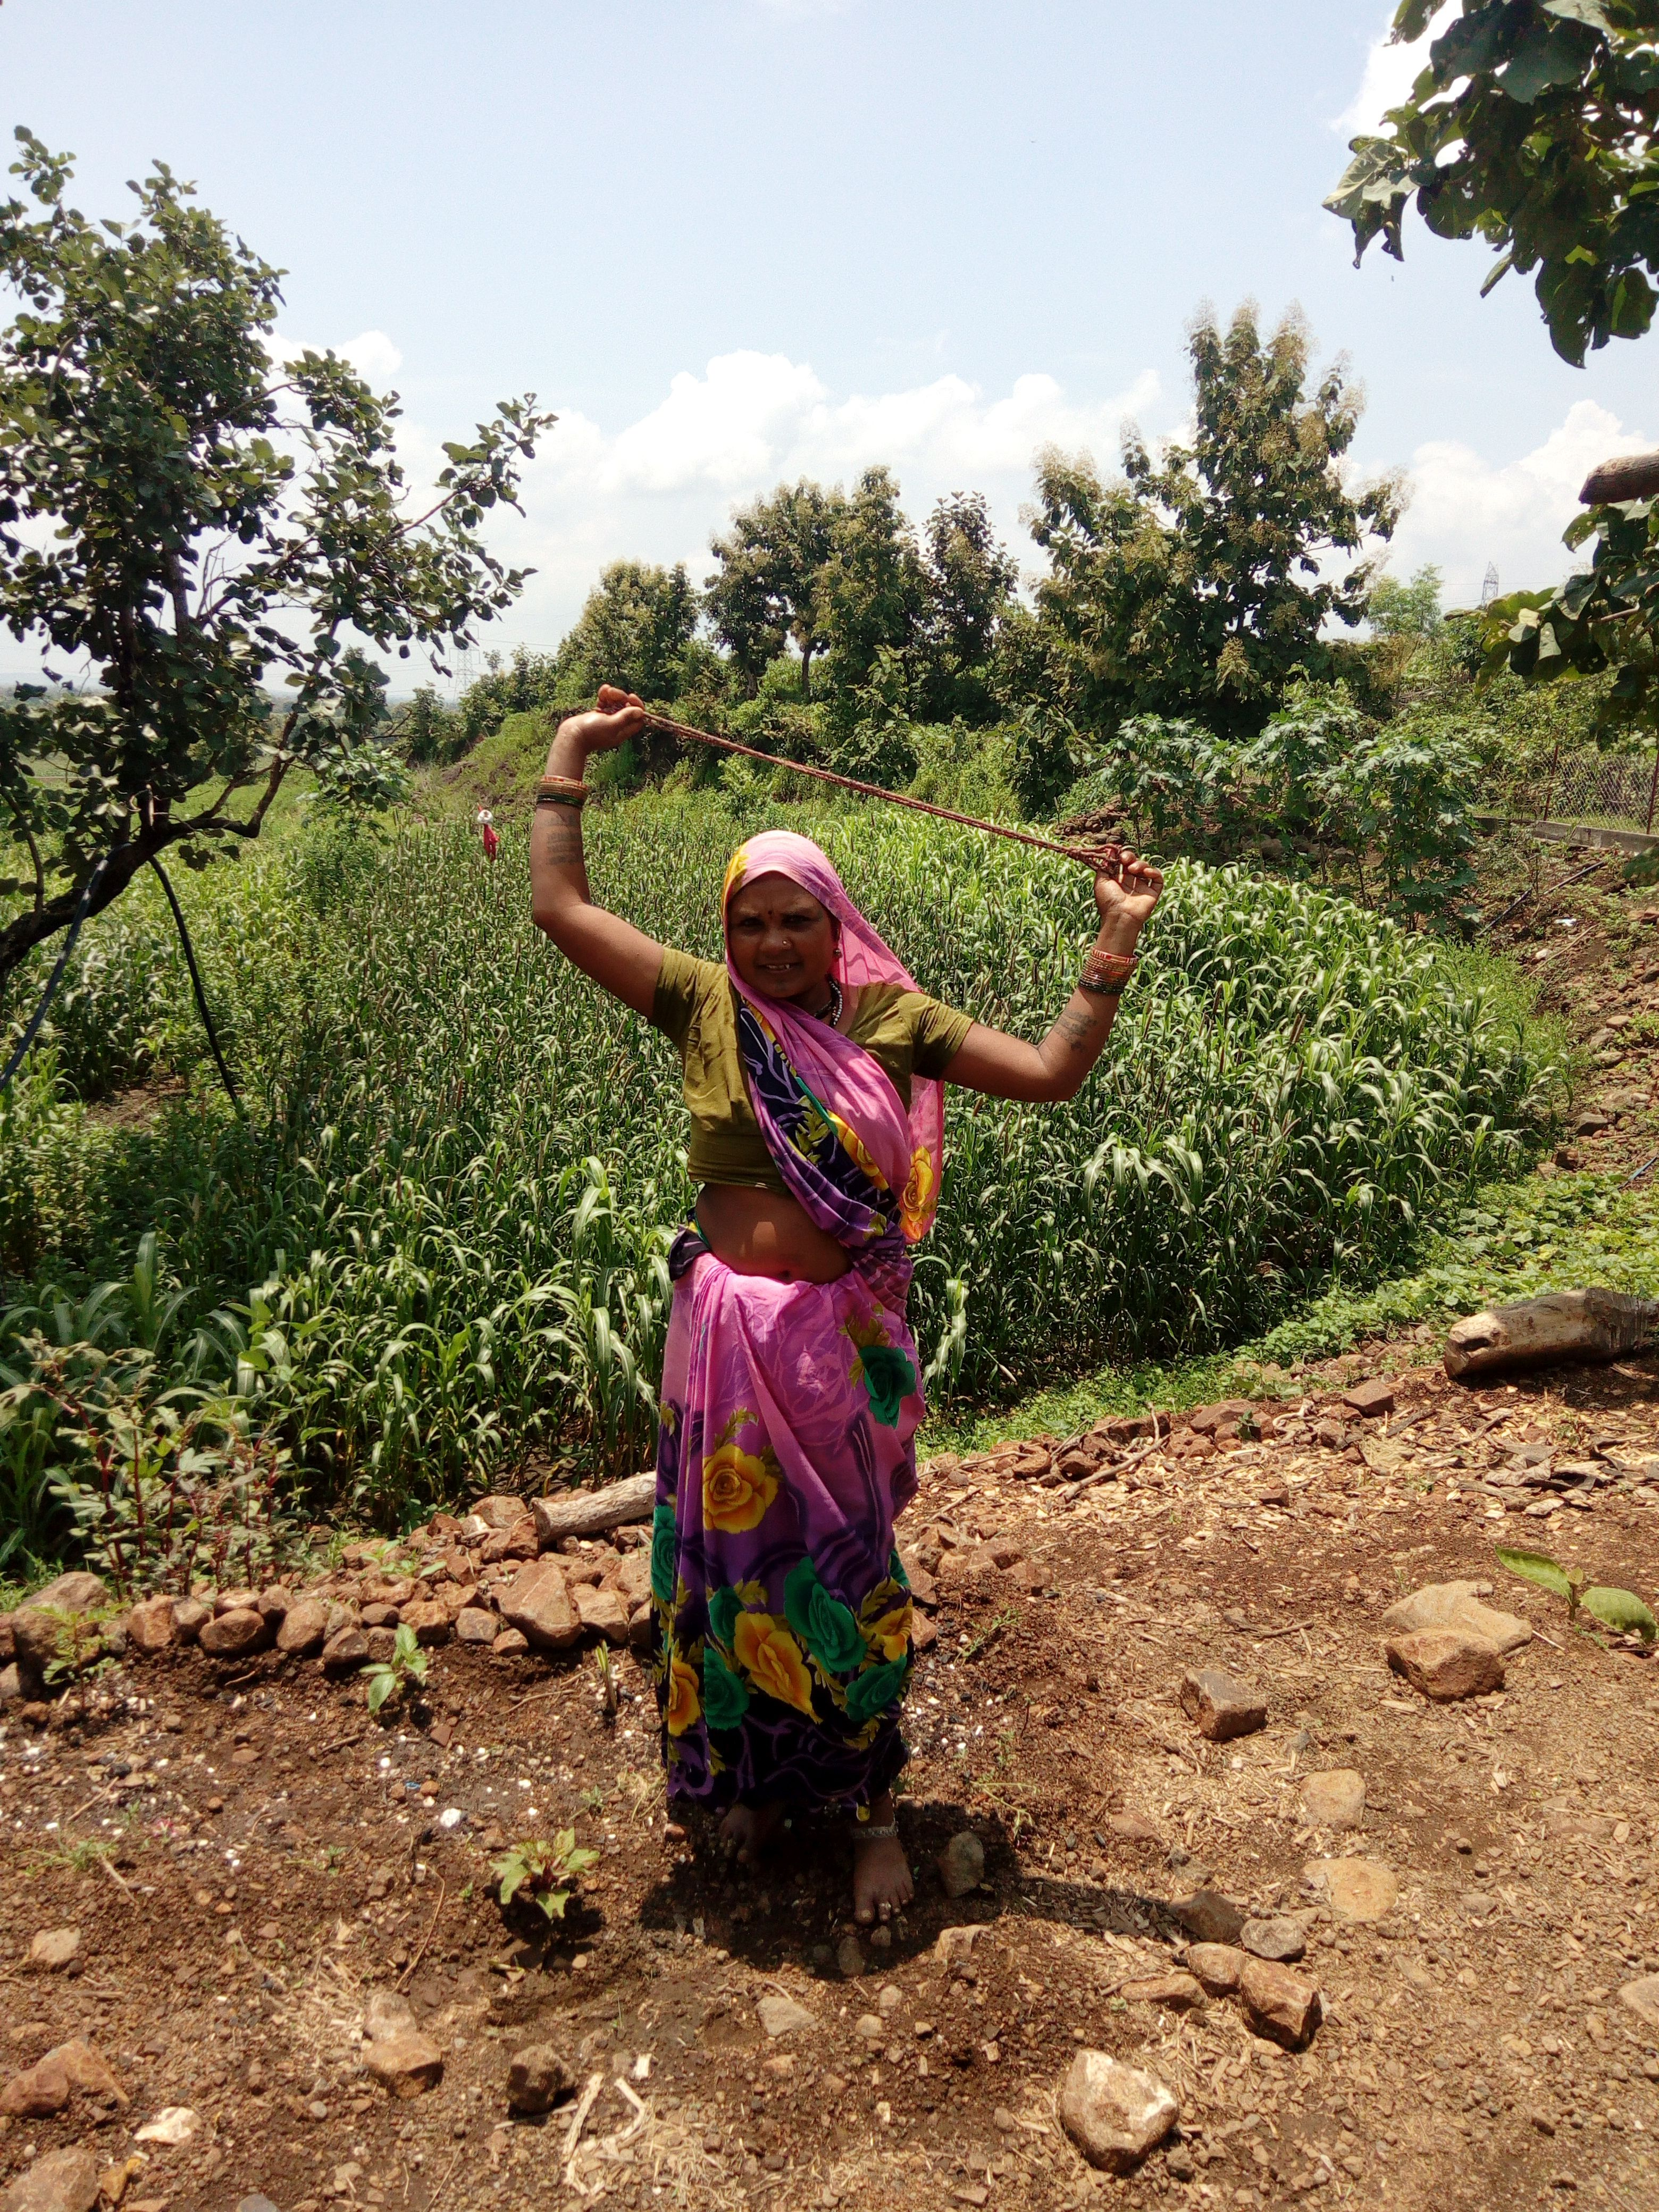 Women like Budi Bai from the village are protecting indigenous seeds that are on the verge of extinction while they are still available (Image: Majlis)